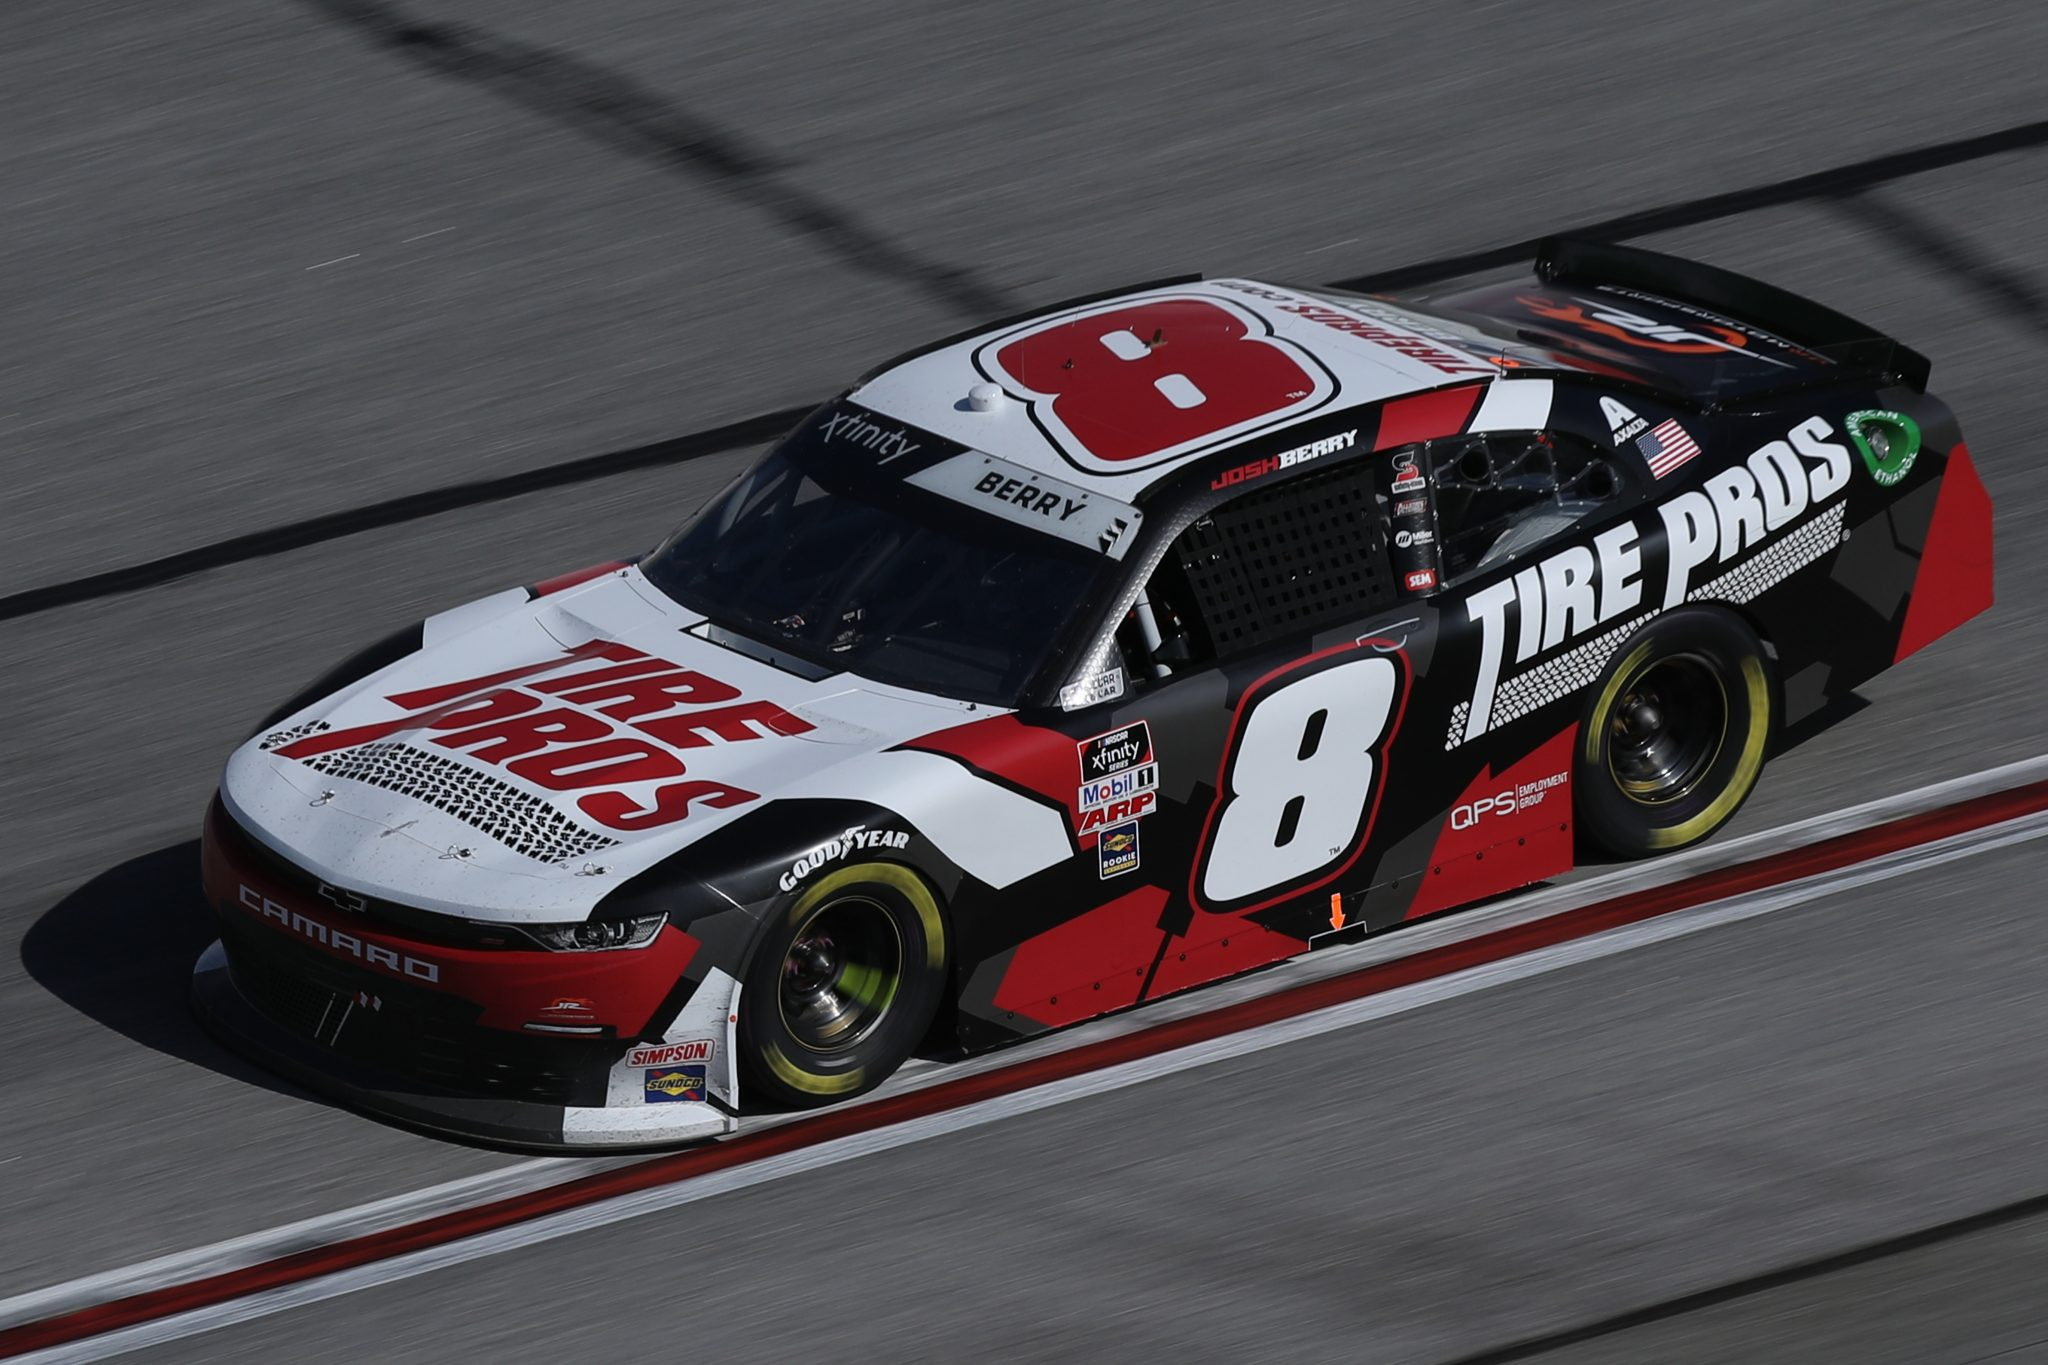 HAMPTON, GEORGIA - MARCH 20: Josh Berry, driver of the #8 Tire Pros Chevrolet, drives during the NASCAR Xfinity Series EchoPark 250 at Atlanta Motor Speedway on March 20, 2021 in Hampton, Georgia. (Photo by Sean Gardner/Getty Images) | Getty Images